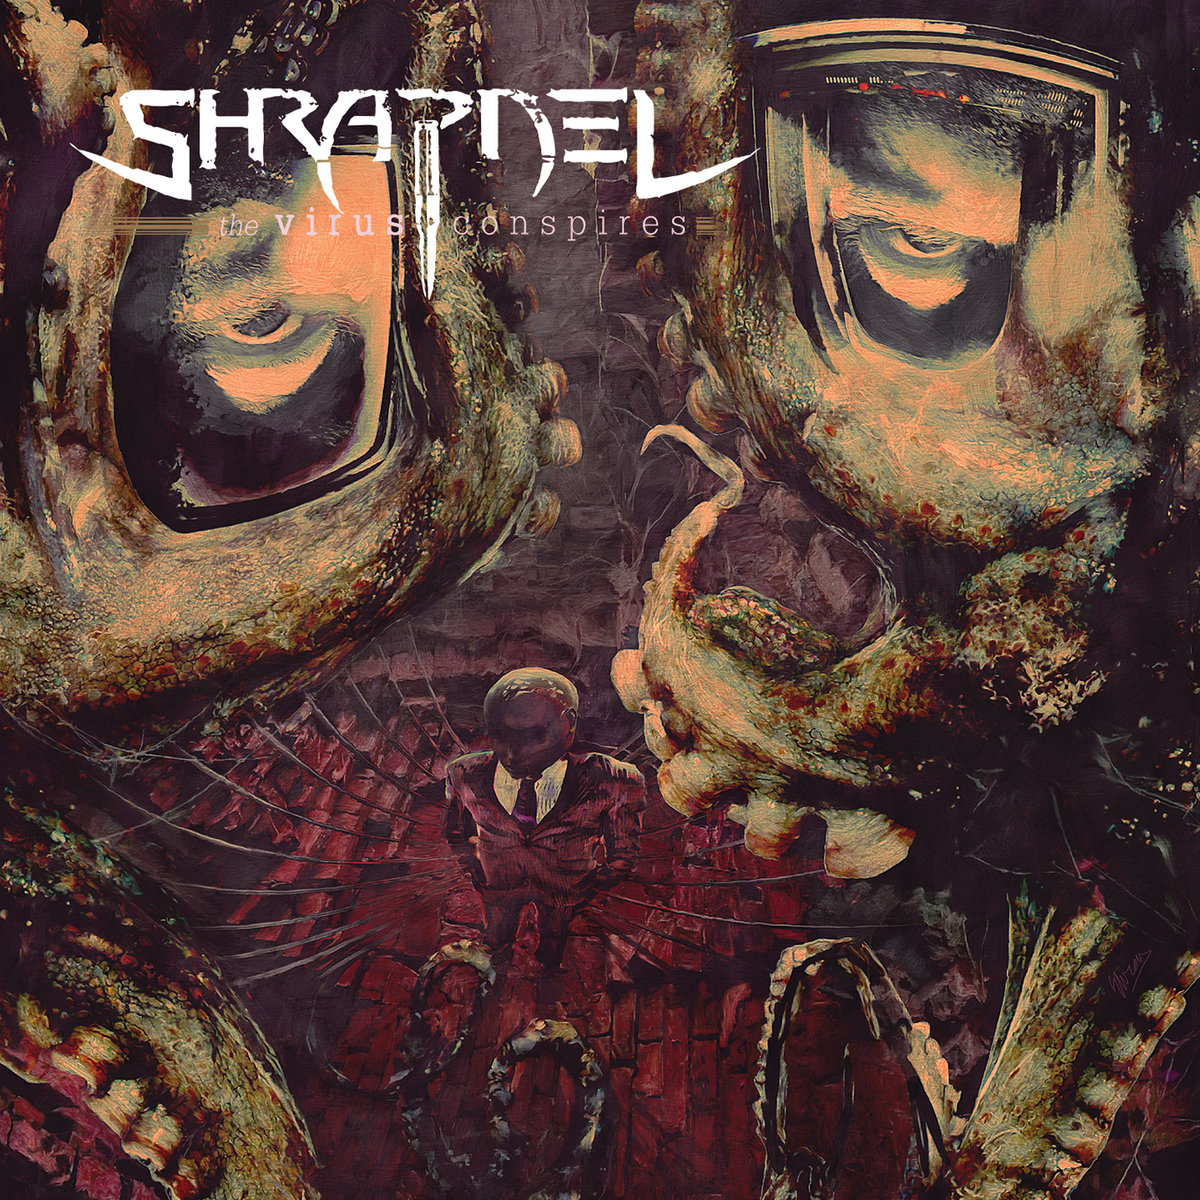 Shrapnel - The Virus Conspires (2014)